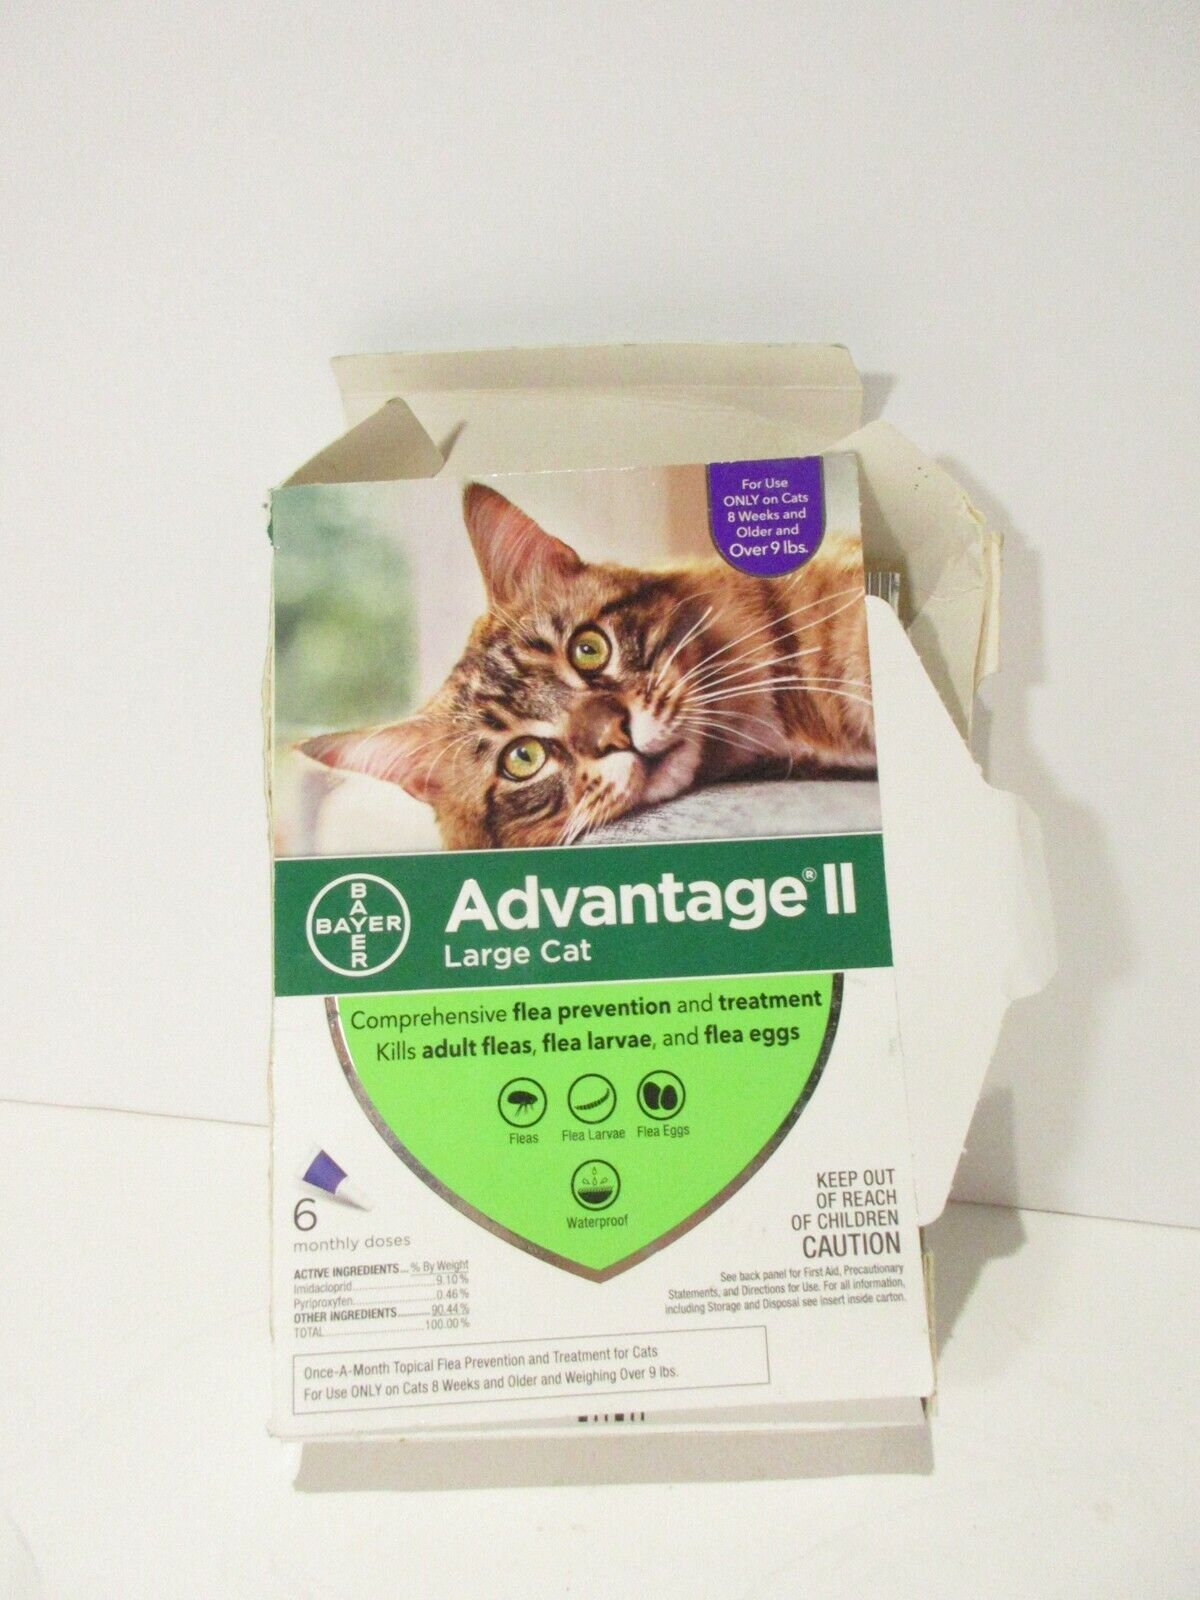 Advantage II Flea Prevention For Large Cats Over 9lbs 6 PACK READ MORE - $25.99